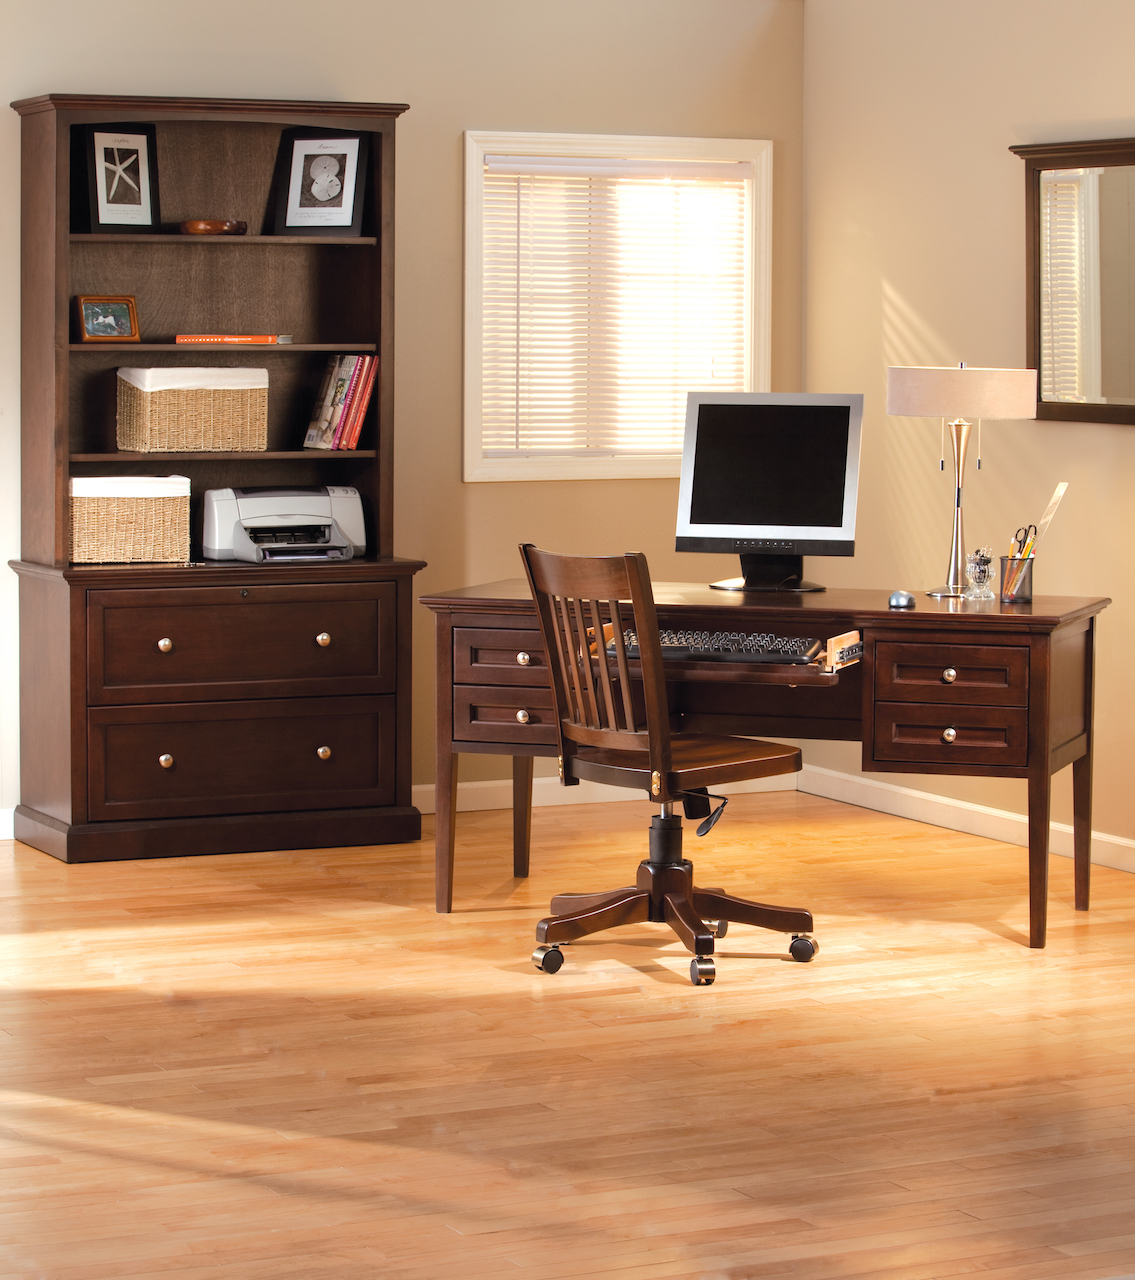 wooden chair lynchburg va folding chairs at lowes solid wood furniture the in virginia